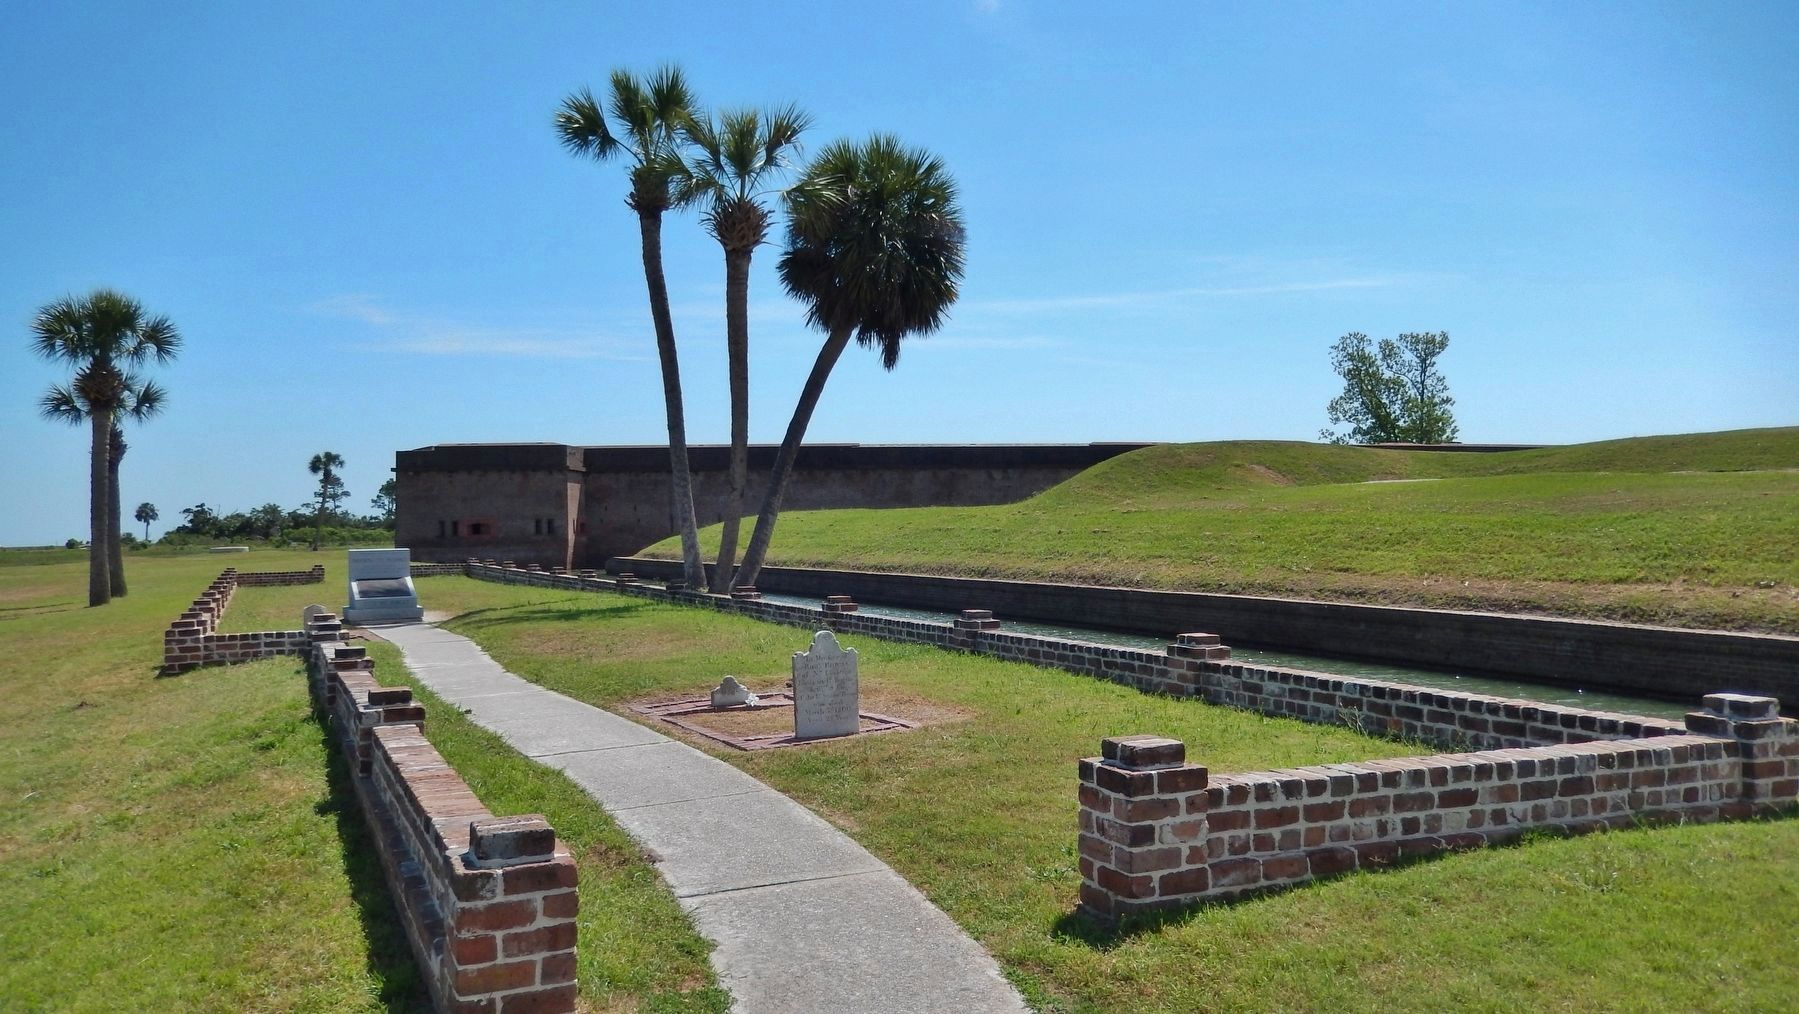 Fort Pulaski Cemetery (<i>view from near marker • Fort Pulaski in background</i>) image. Click for full size.